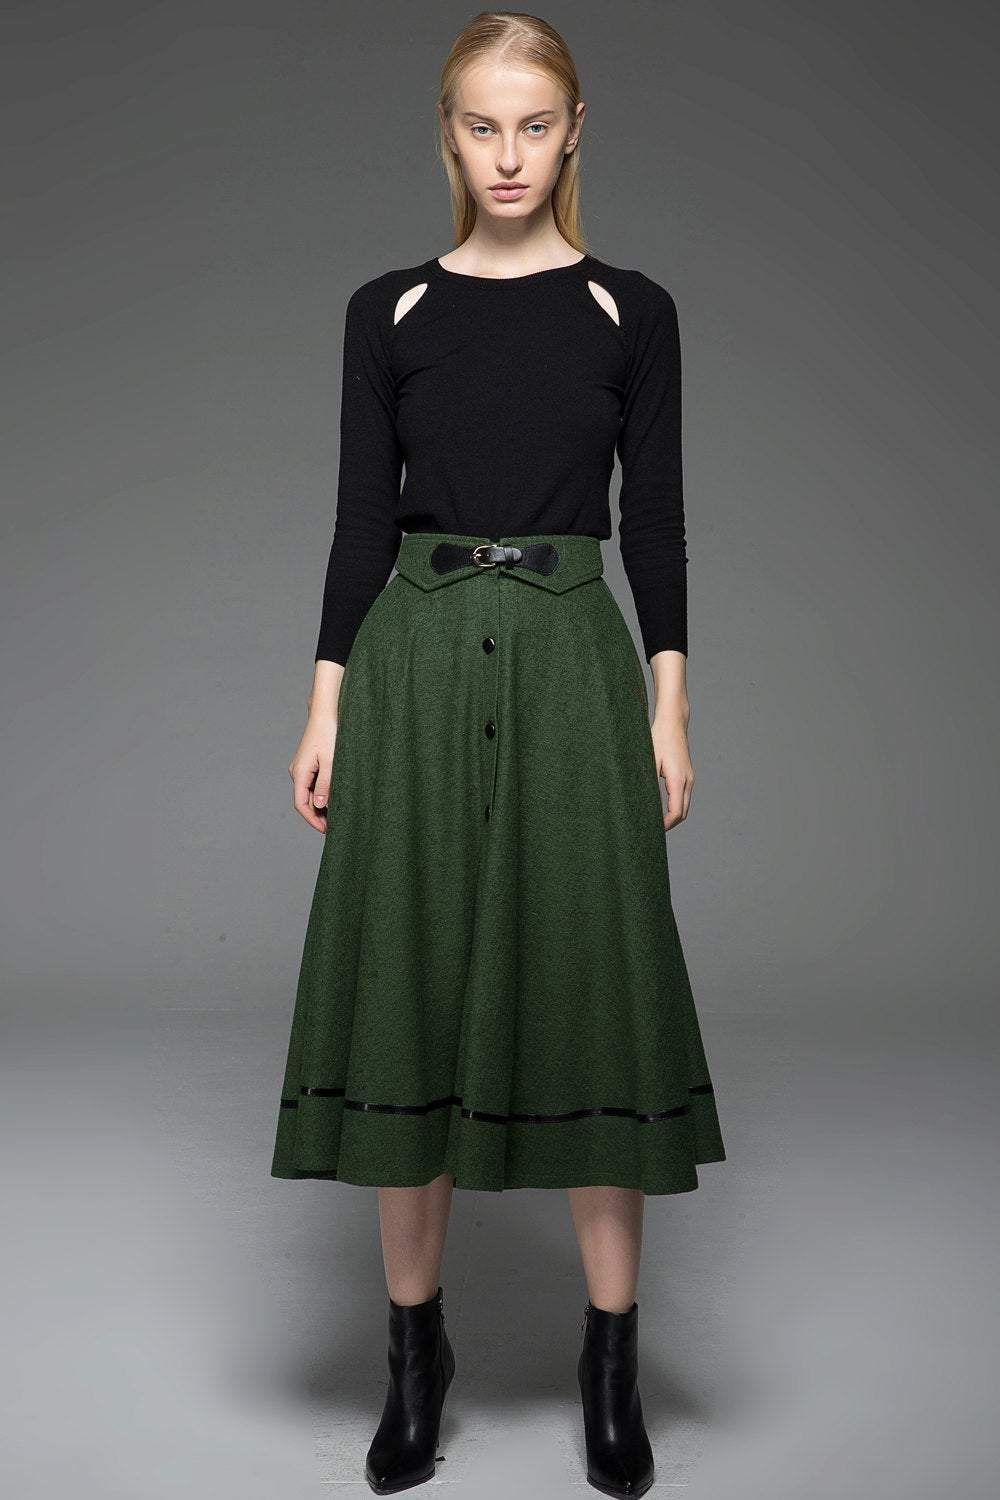 A-Line Winter Warm Midi-Length Skirt C760